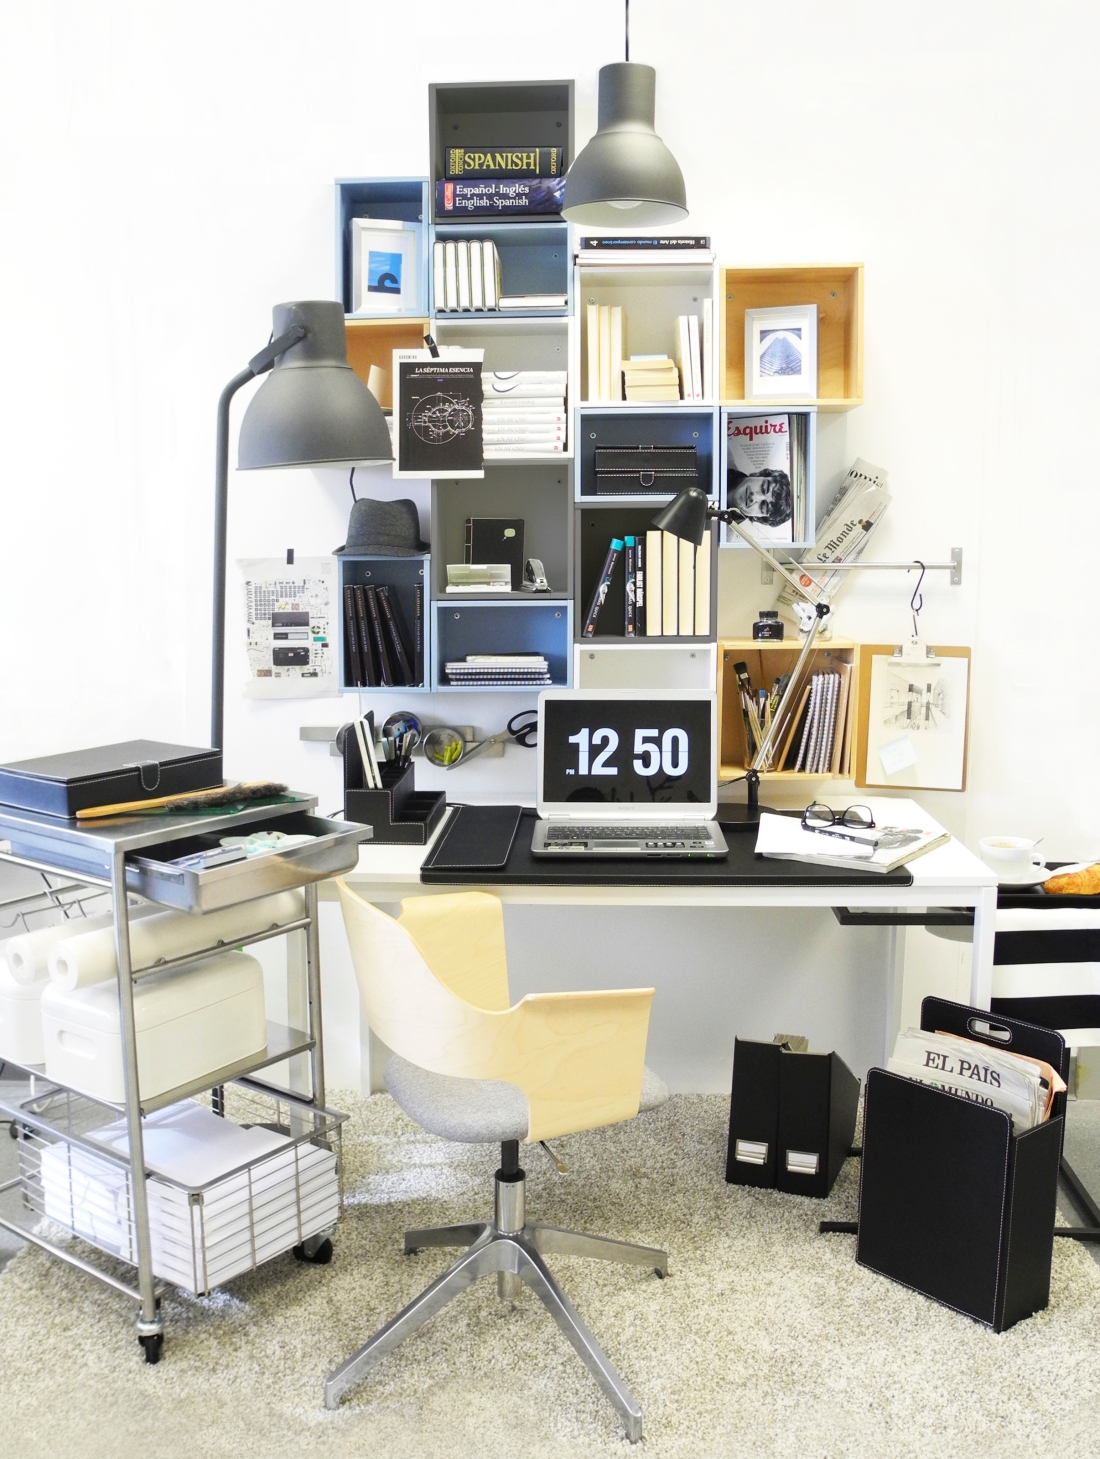 Stephane's cool home office